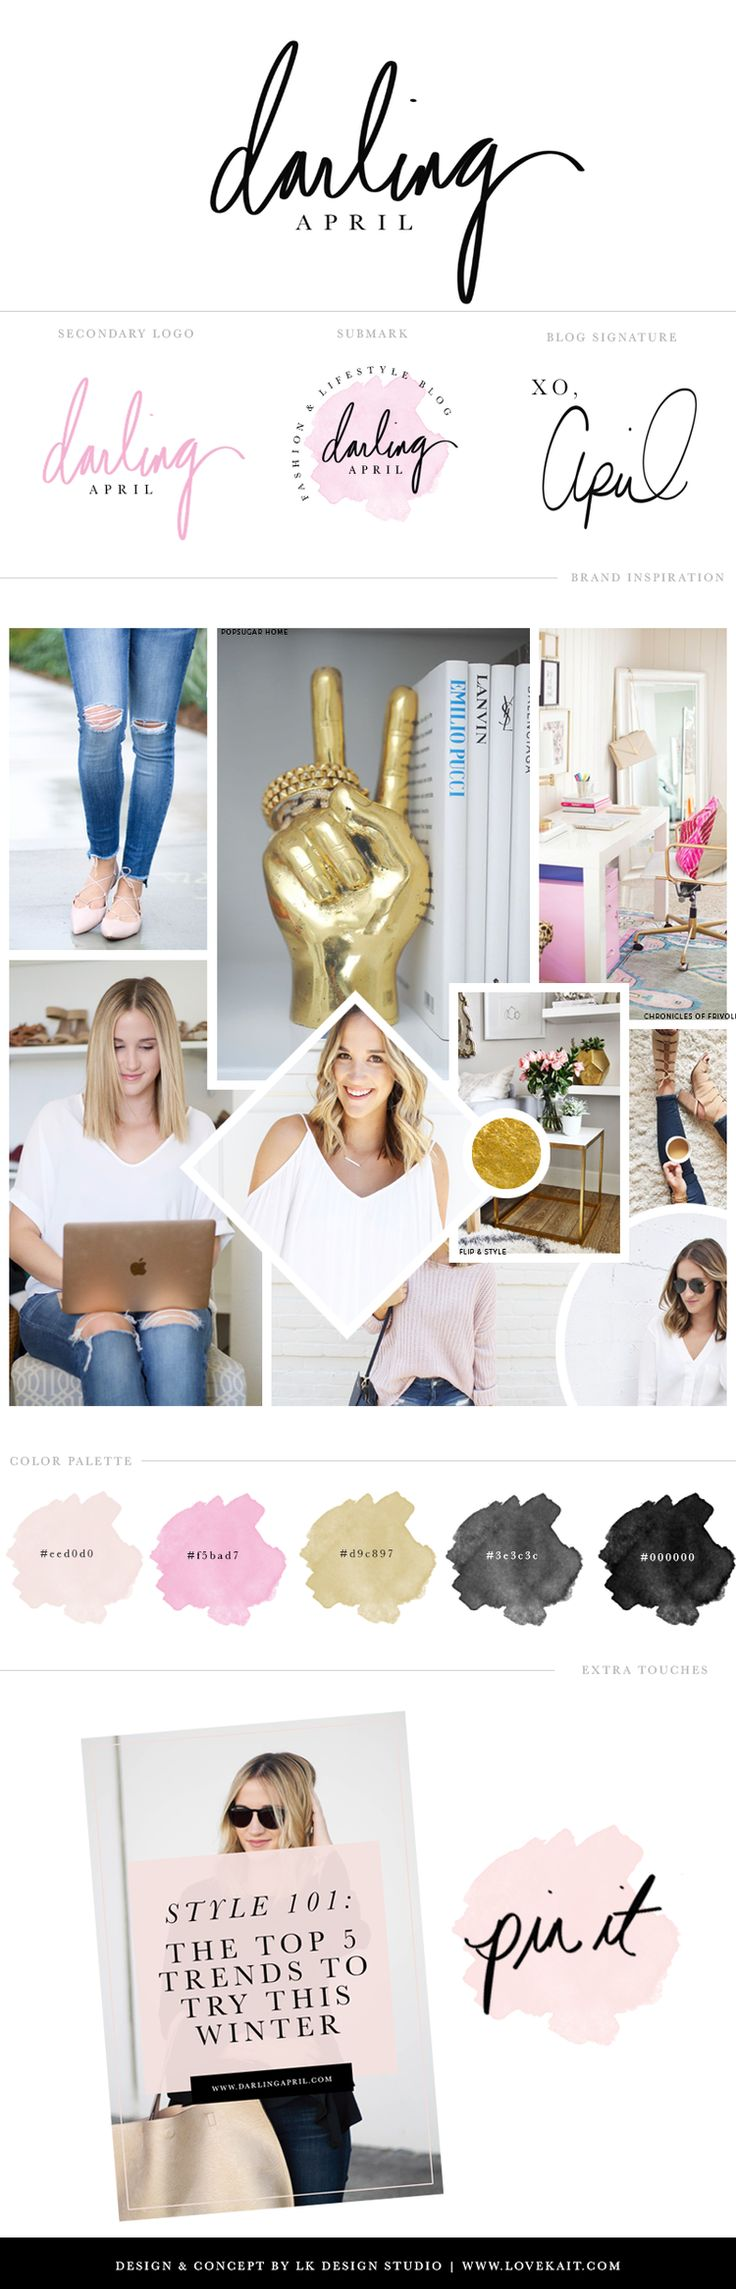 Fashion Blog Branding & Logo Design | LK Design Studio